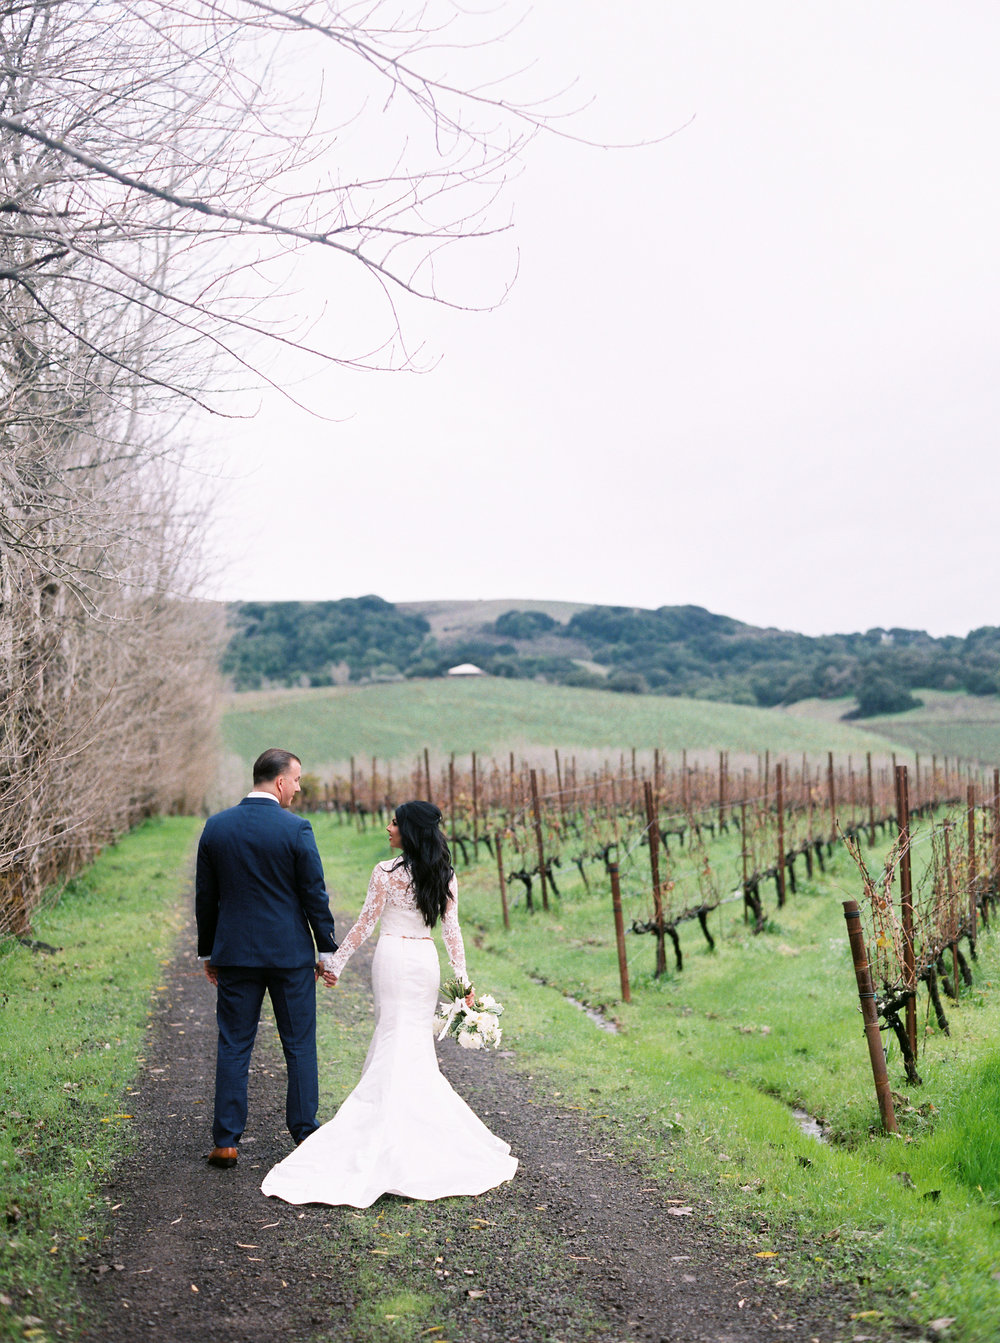 romantic-wedding-at-cline-winery-in-sonoma-california-1-7.jpg